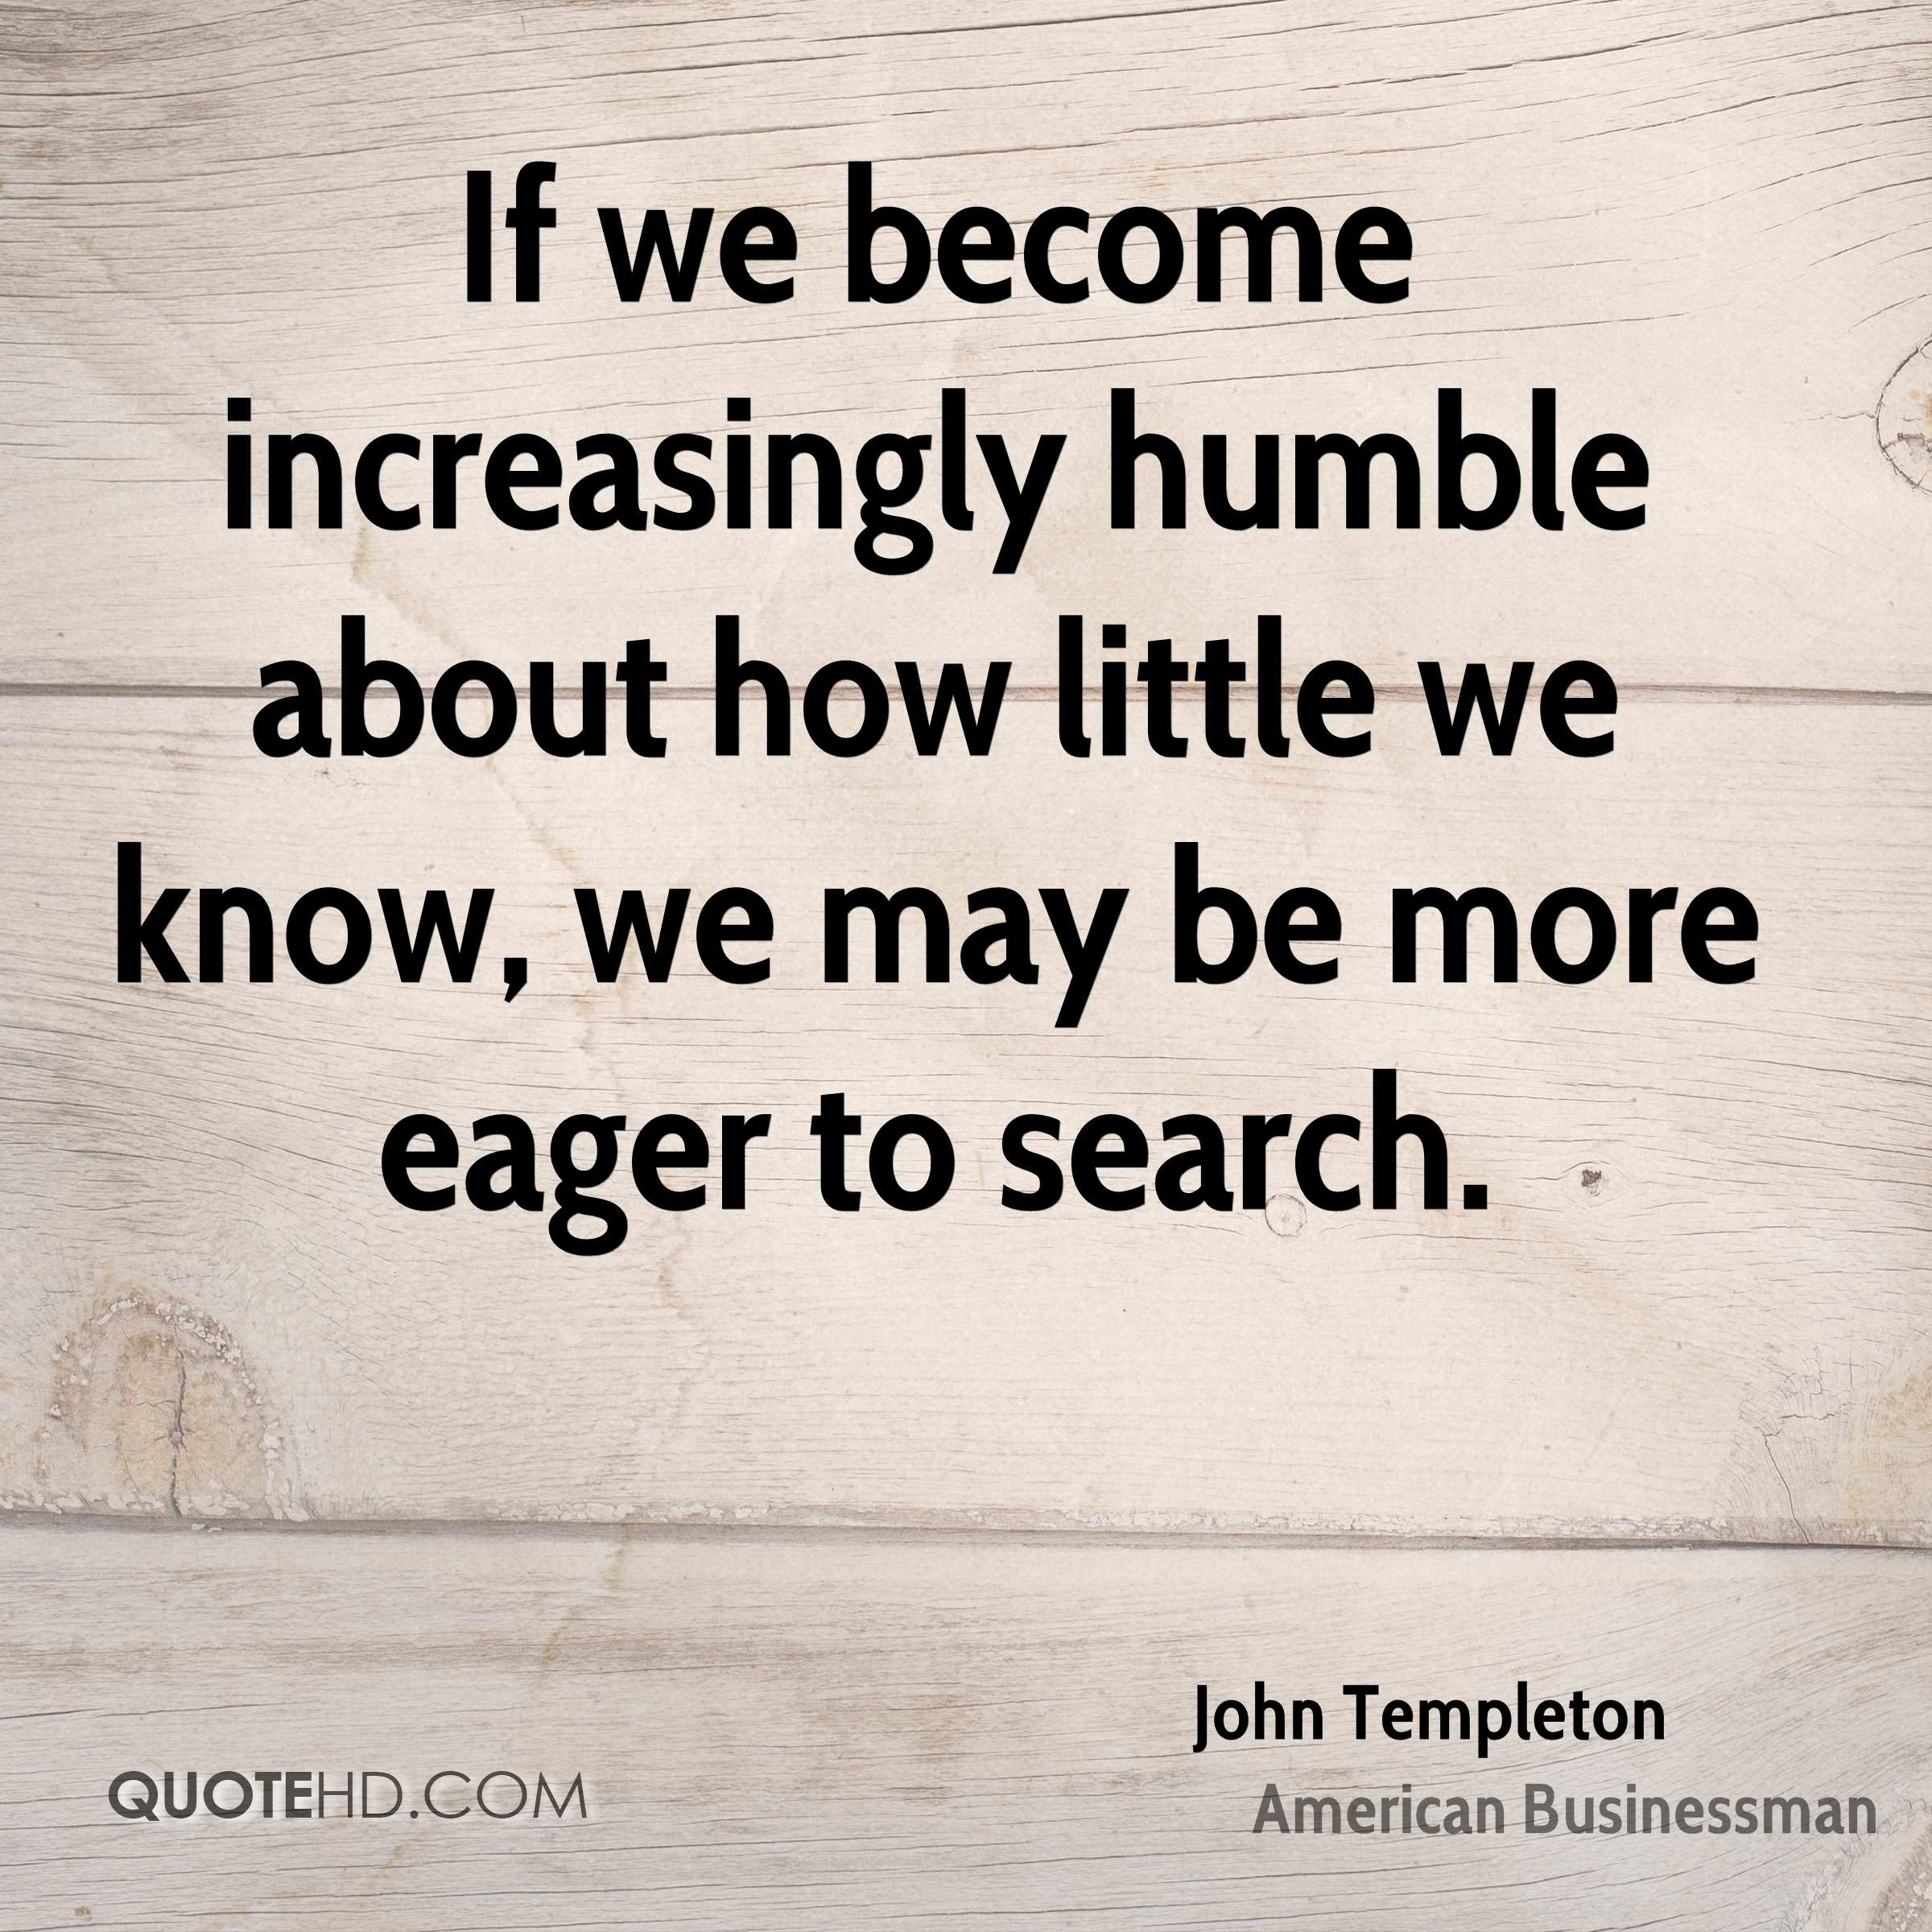 If we become increasingly humble about how little we know, we may be more eager to search.